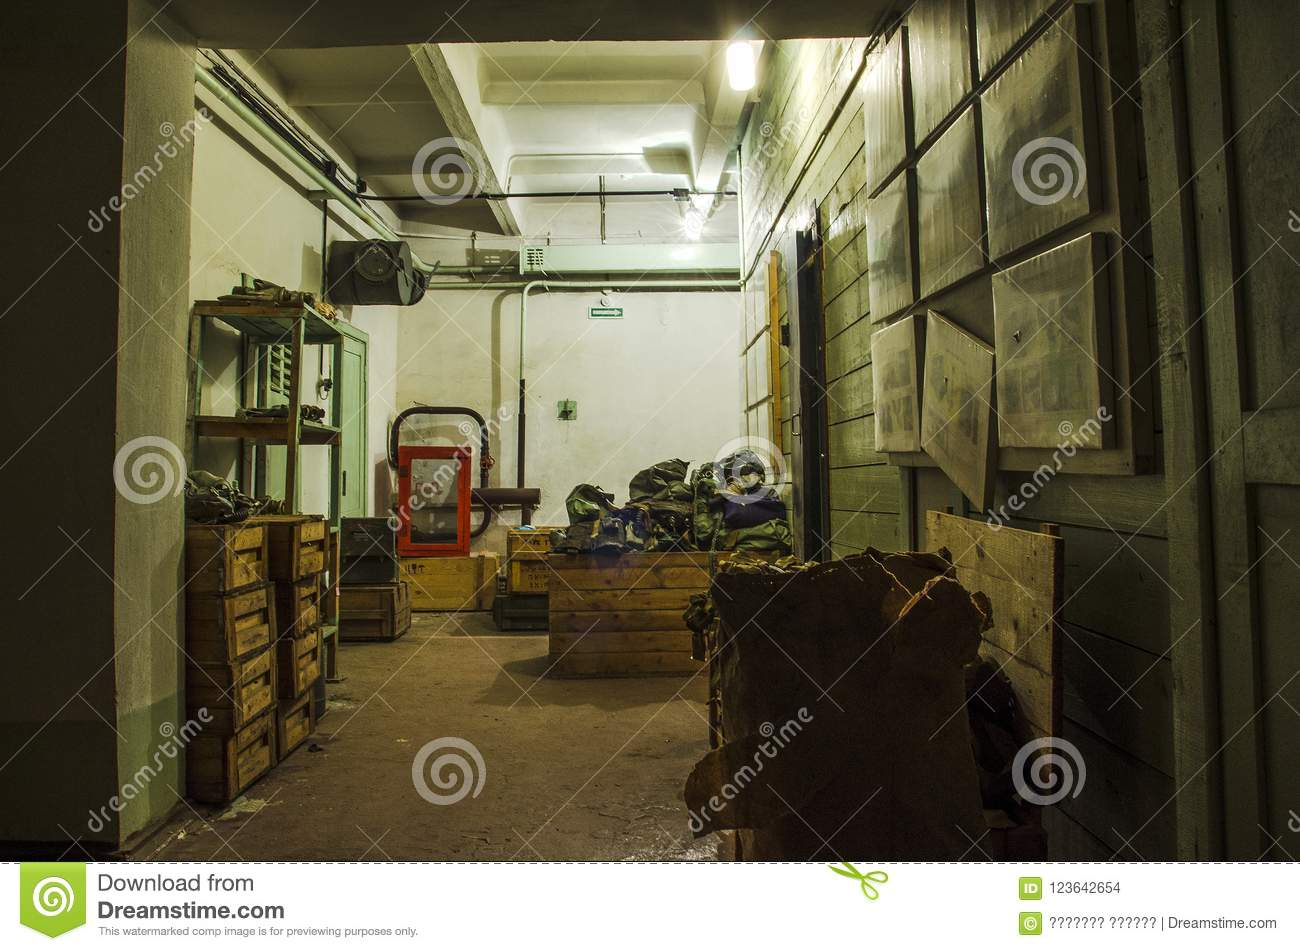 Old Industrial Filter Ventilation System In The Basement Of An Abandoned Bomb Shelter Stock Photo Image Of Respirators Shelter 123642654